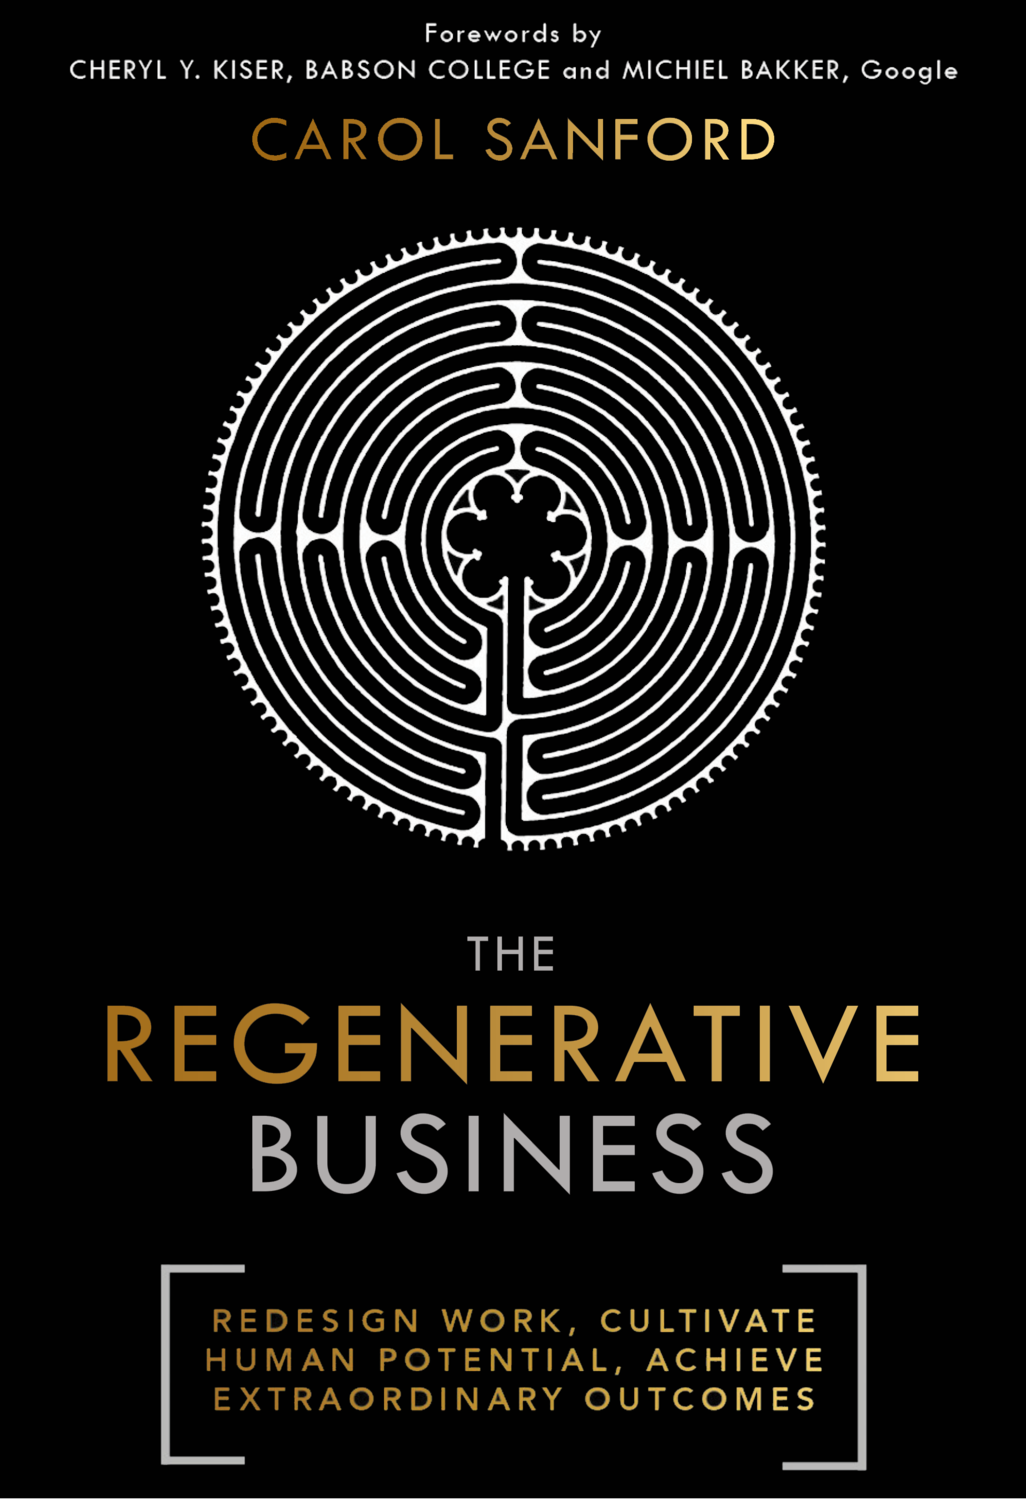 The Regenerative Business: Redesign Work. Cultivate Human Potential. Achieve Extraordinary Outcomes - Business